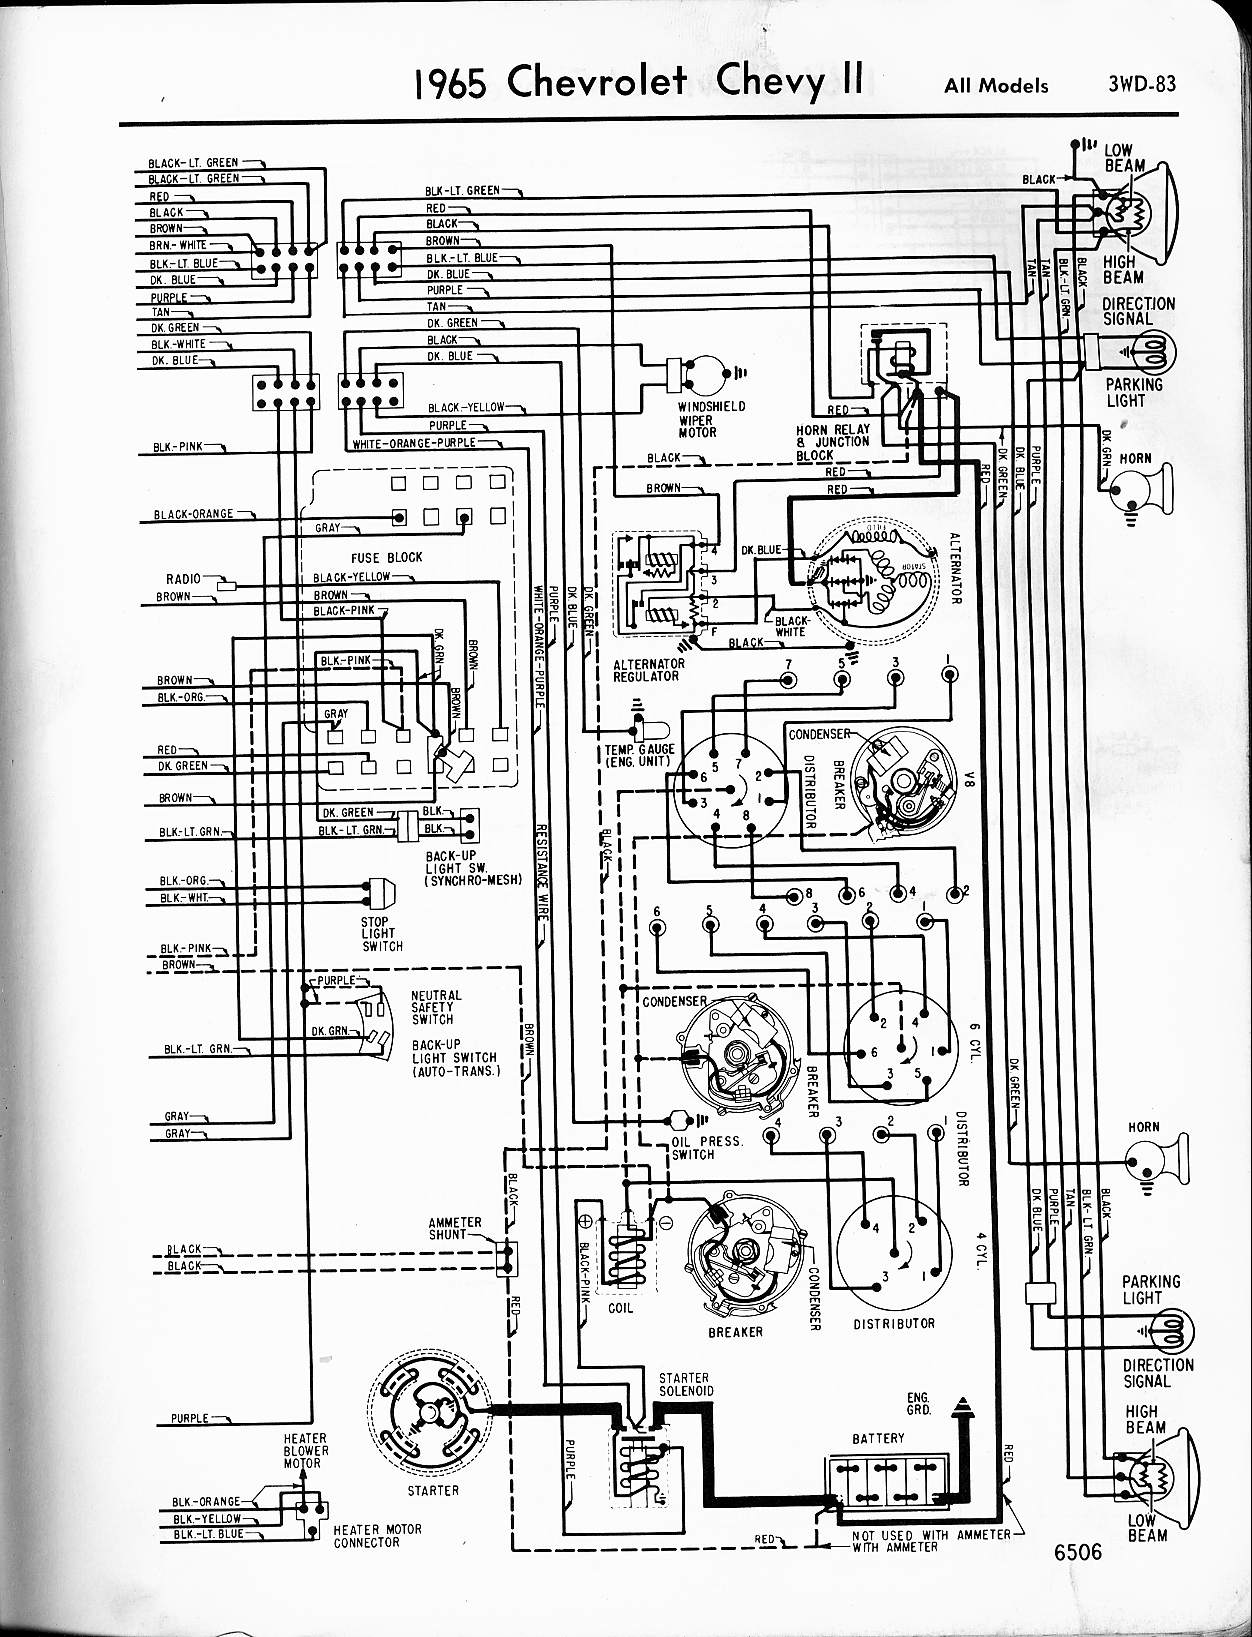 1978 F150 Headlight Wiring Diagram - Technical Diagrams  Chevy Truck Headlight Wiring Diagram on